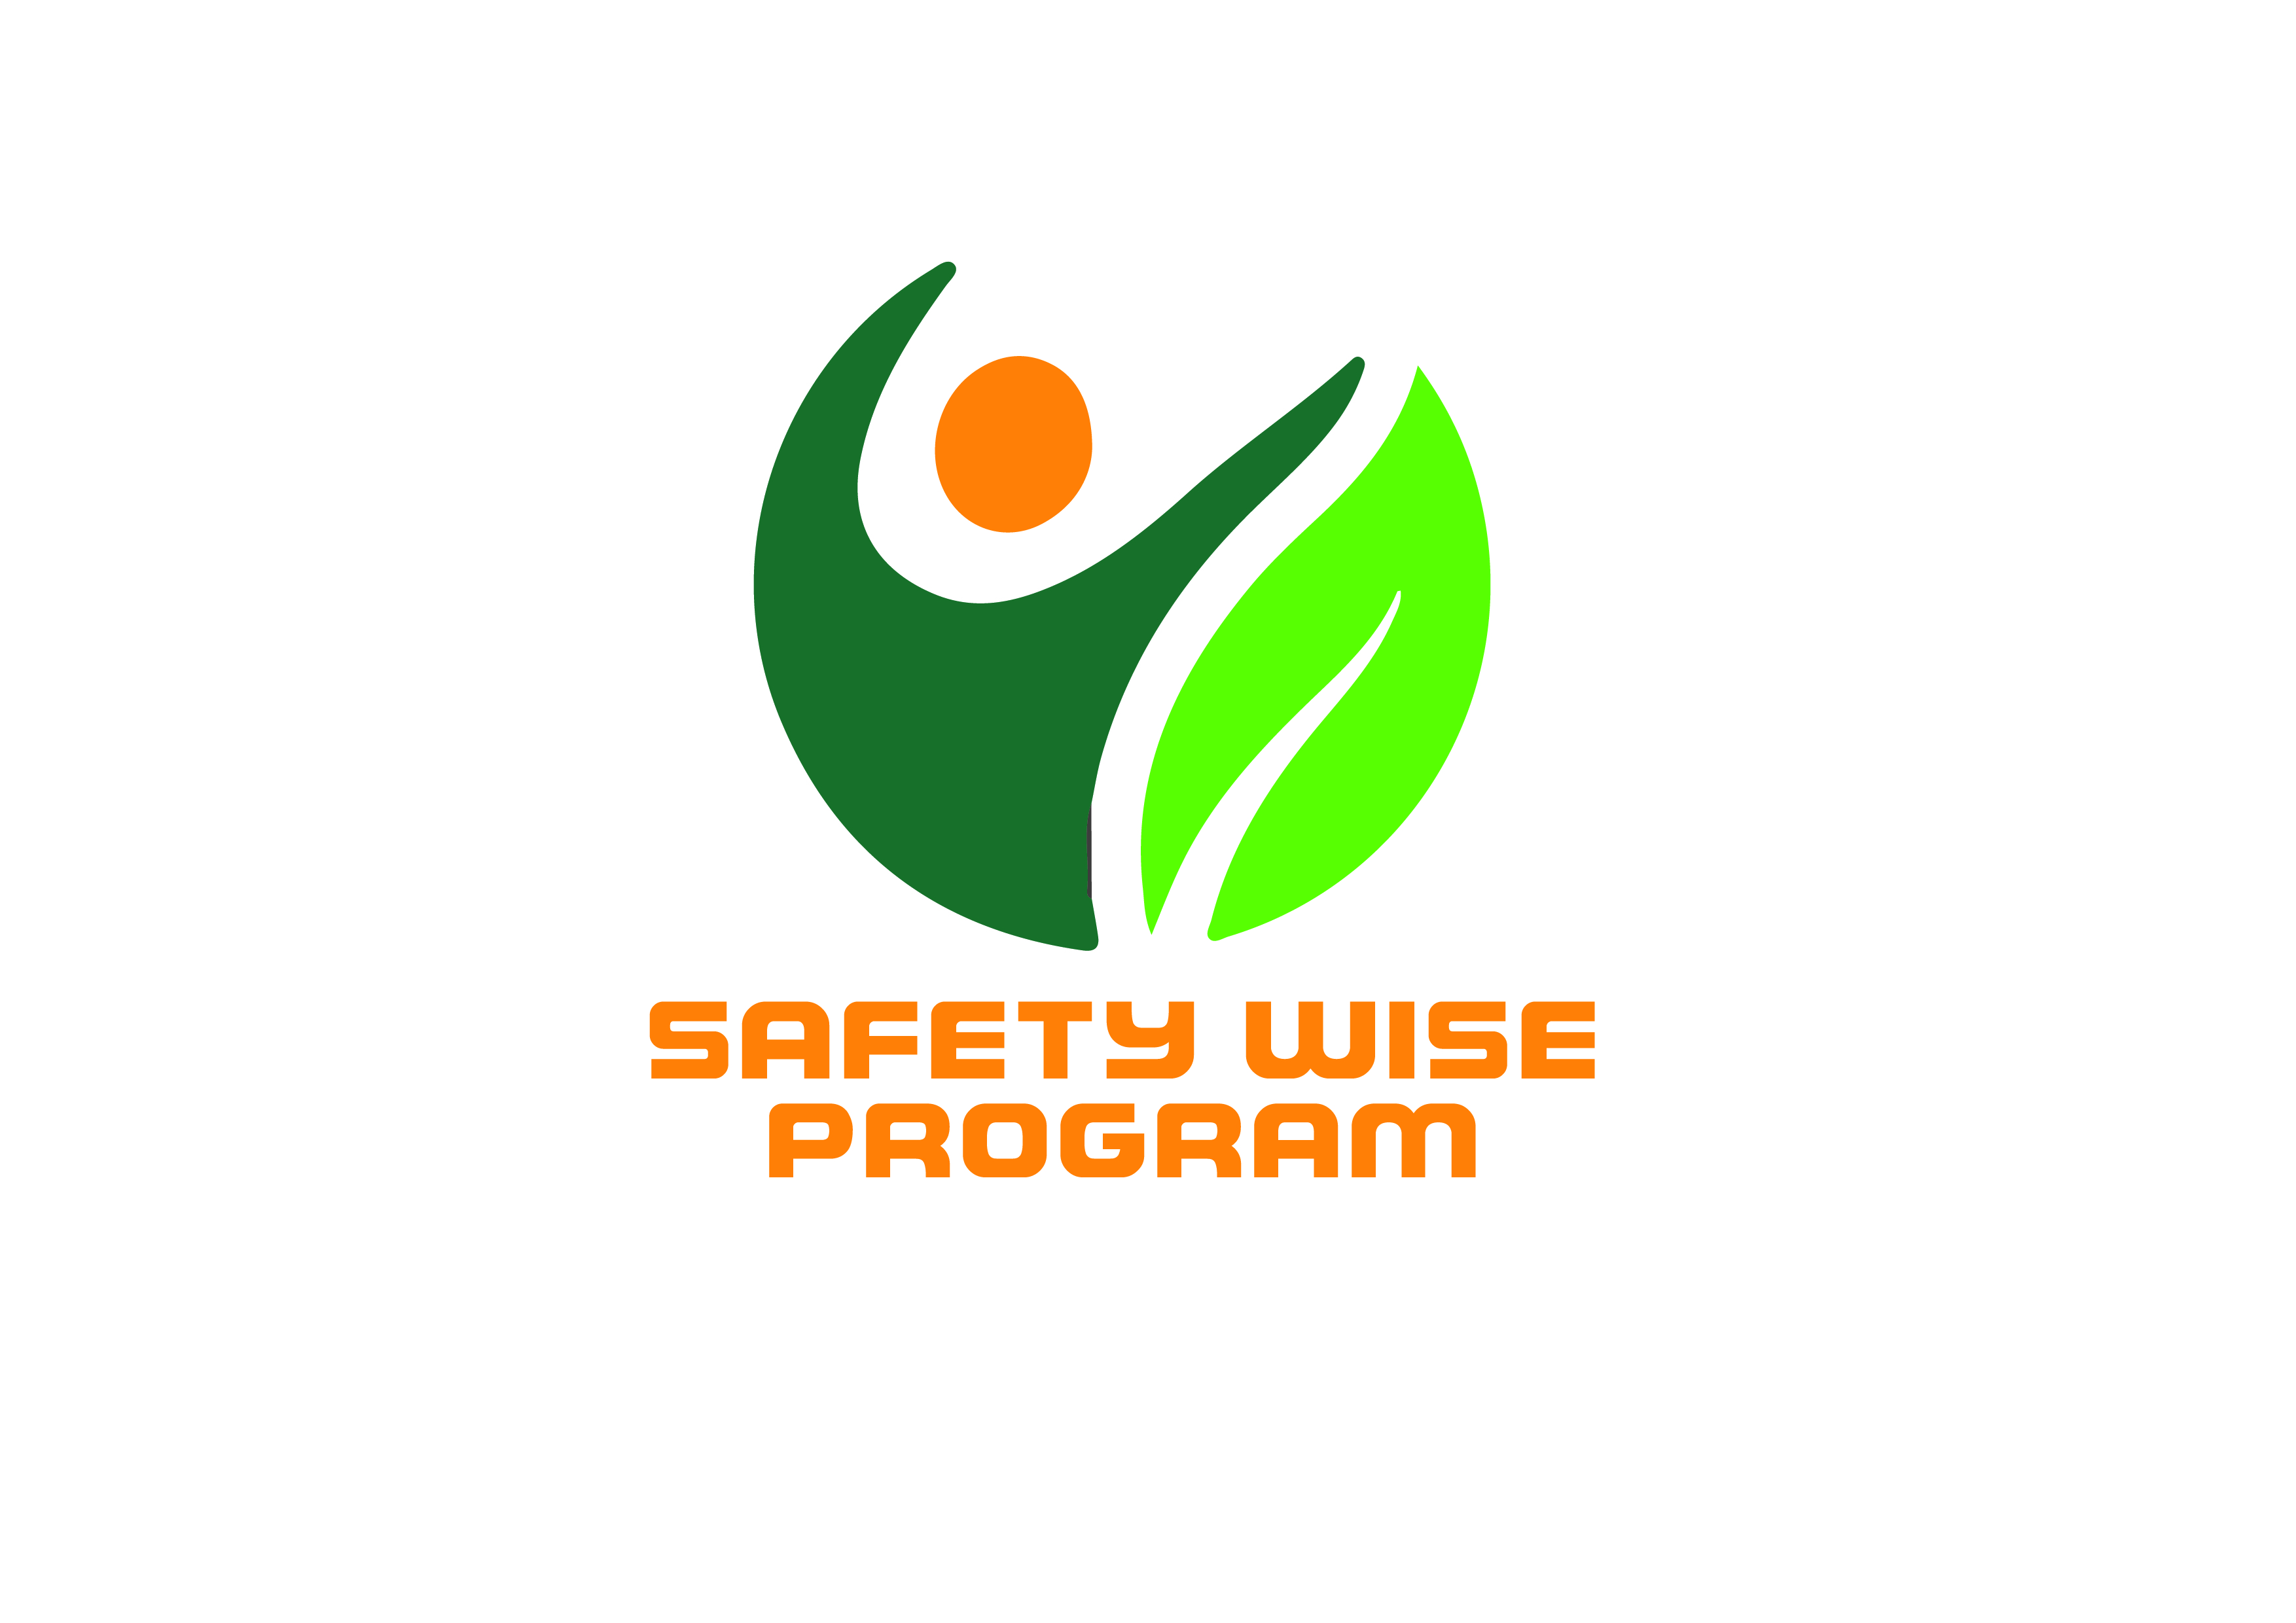 Logo Design by Anum Aamir - Entry No. 83 in the Logo Design Contest New Logo Design for Safety Wise Program.